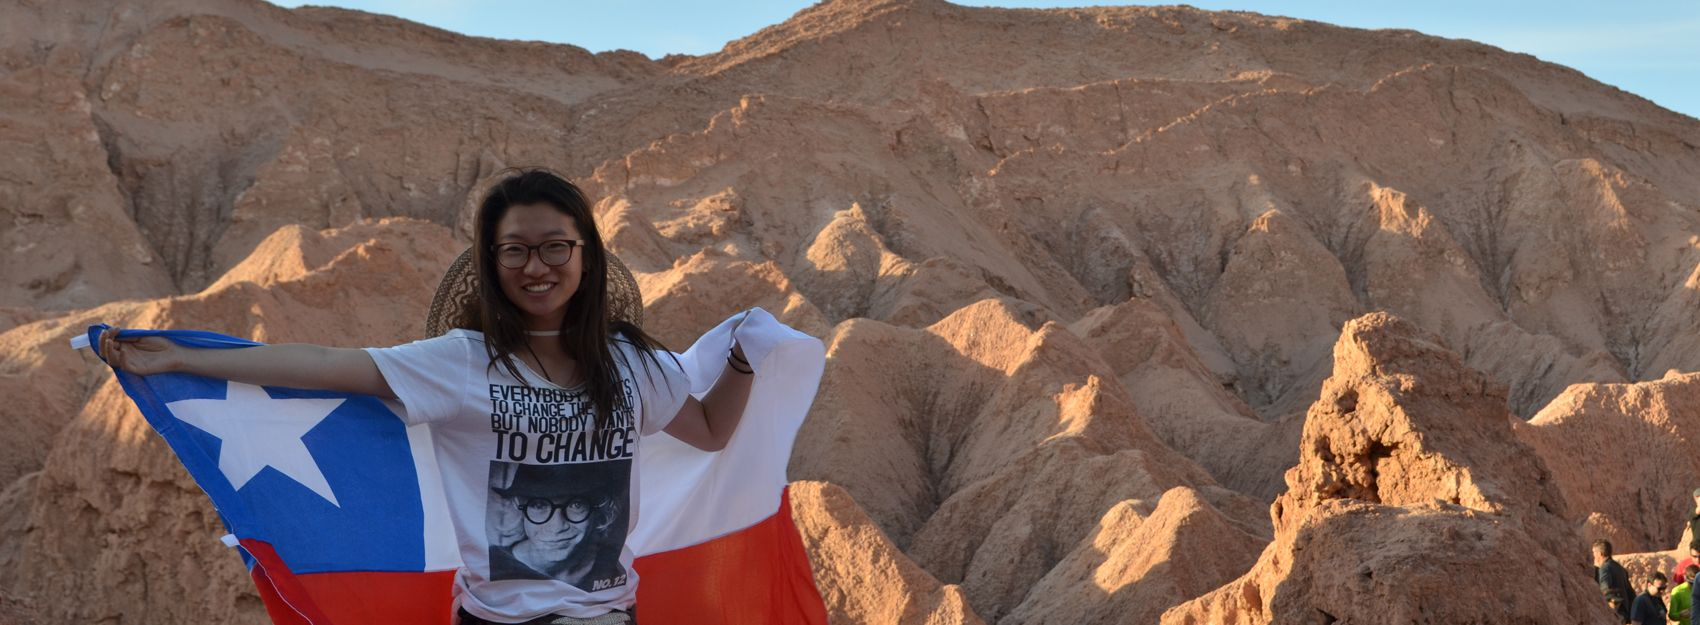 student posing with Chilean flag in front of red rocks